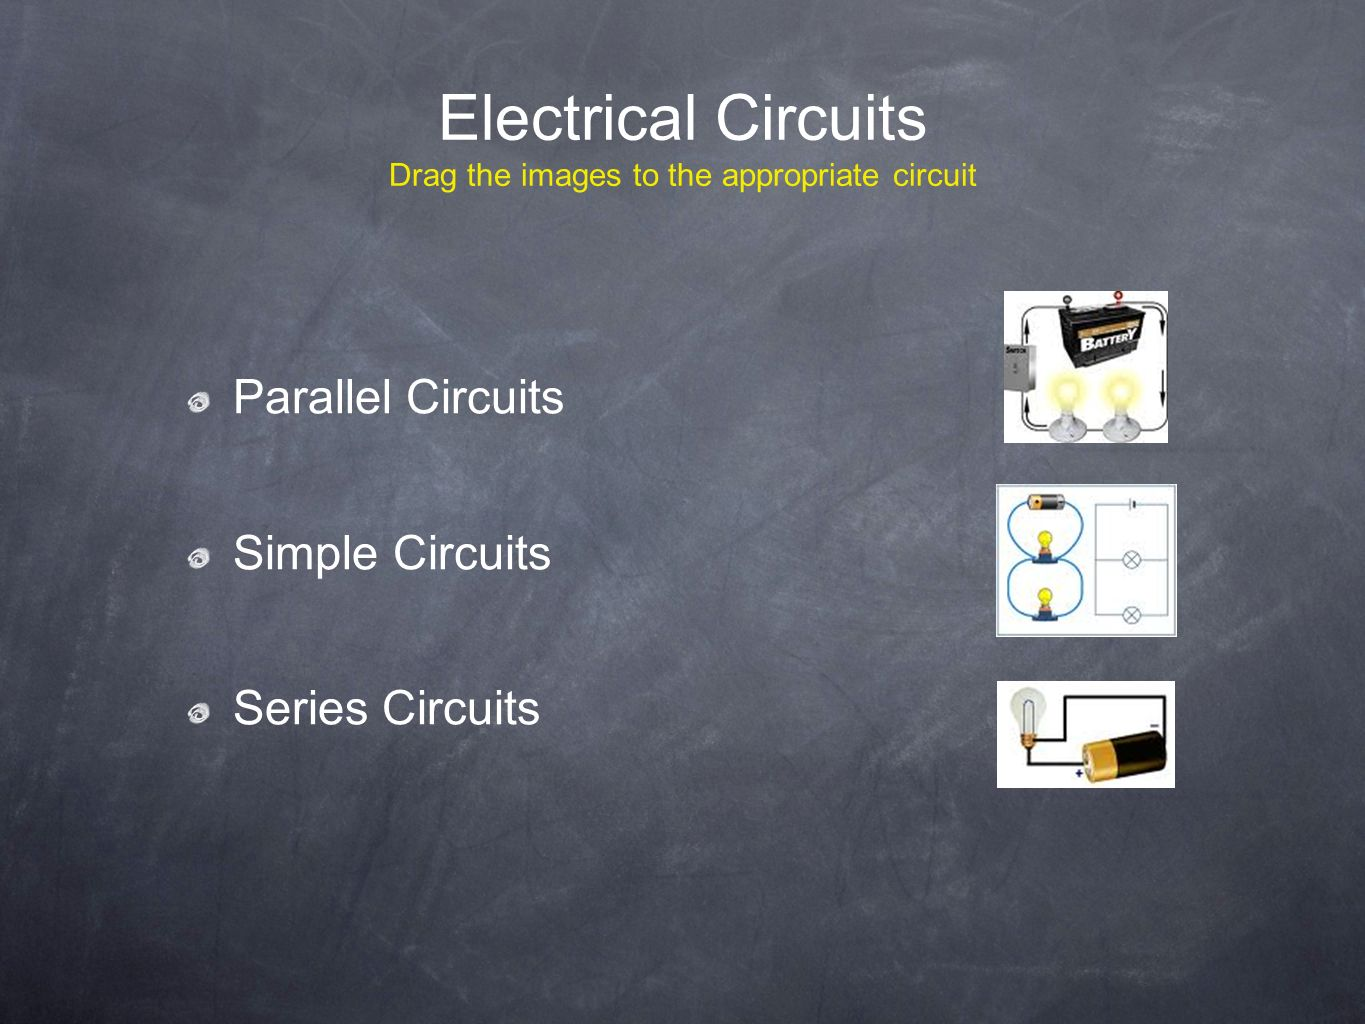 Electric Energy Transfer And Conservation Mst Inquiry Unit Dr O Series Circuits Parallel 6 Electrical Drag The Images To Appropriate Circuit Simple